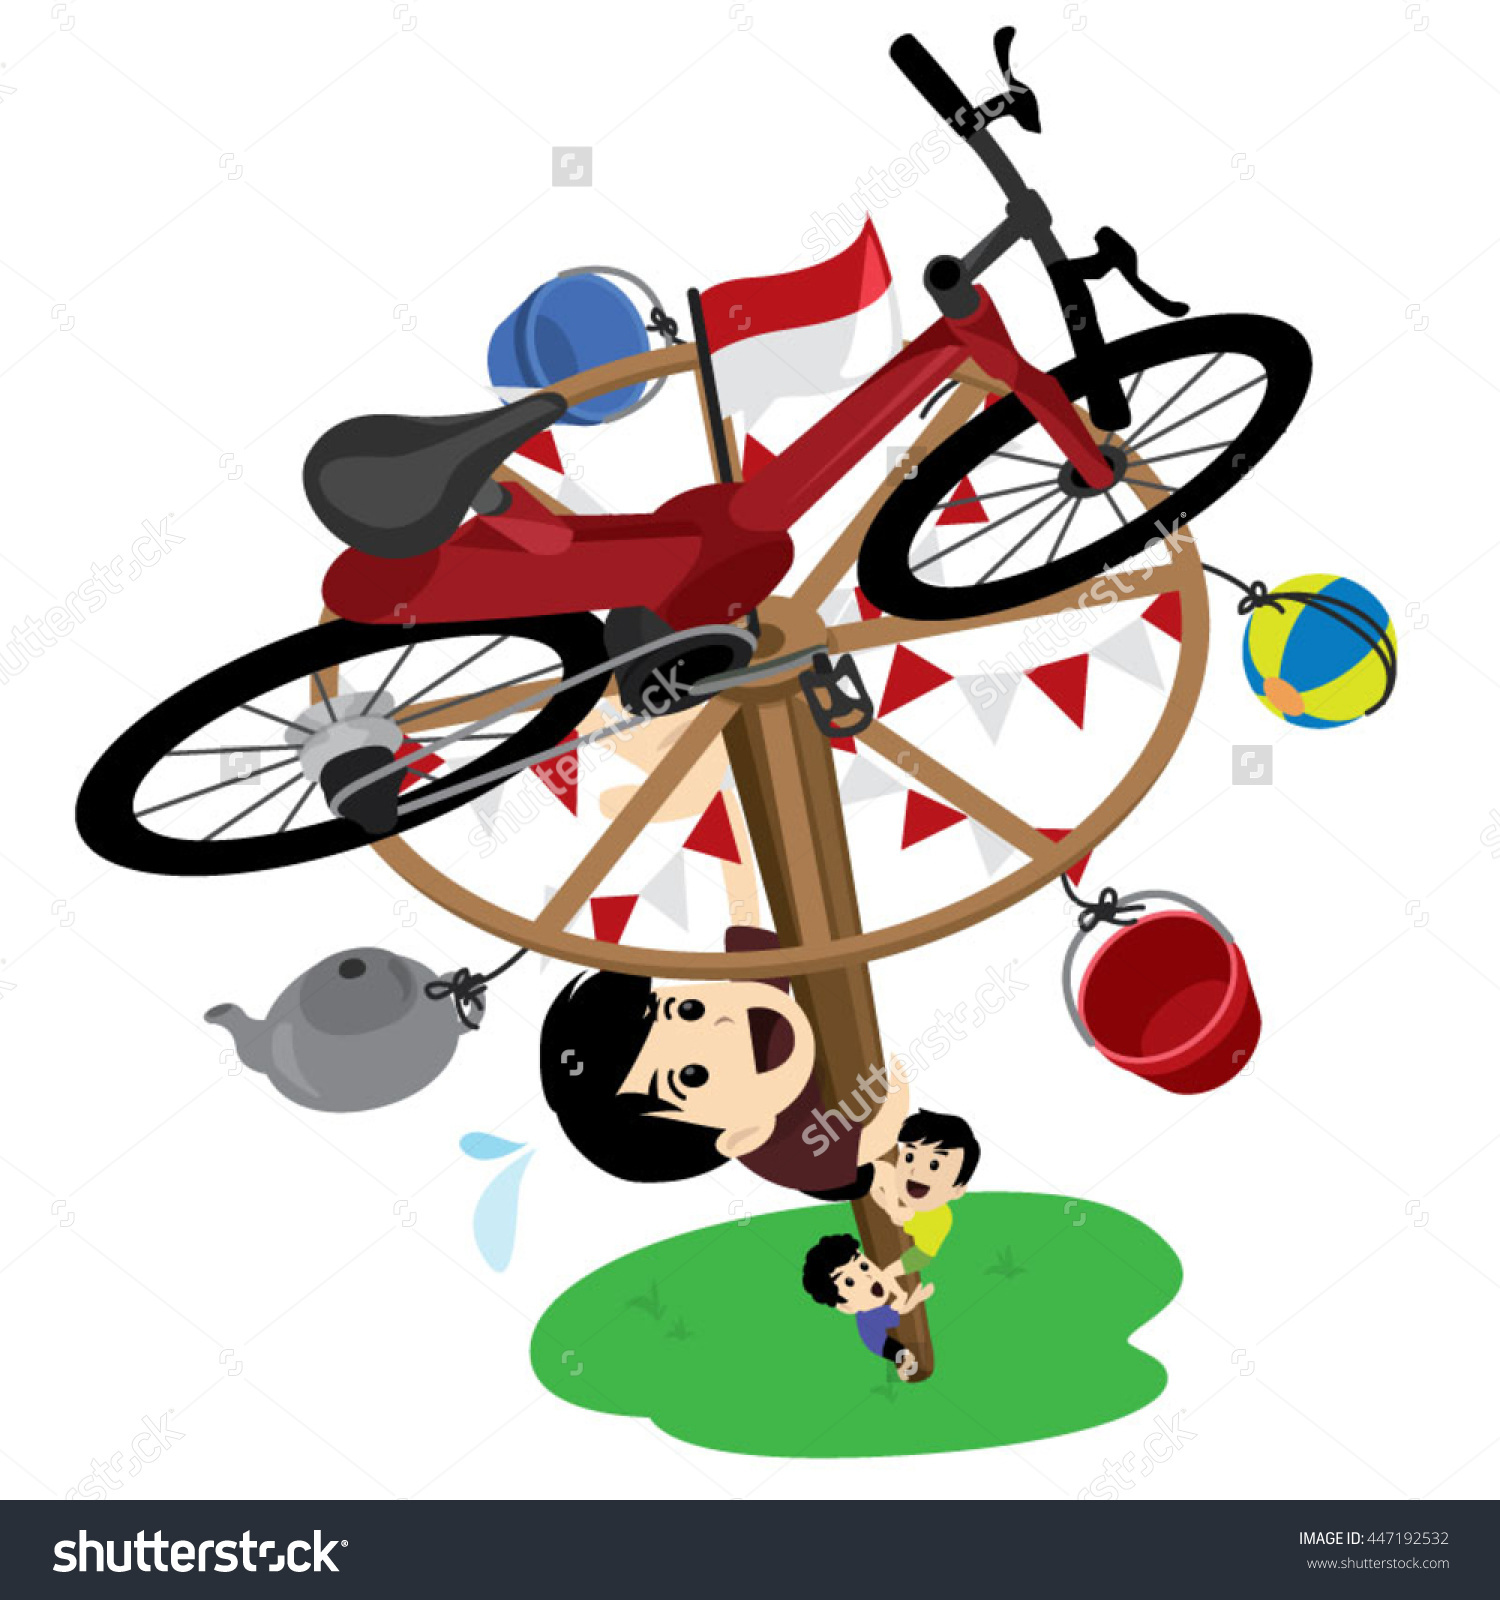 Indonesia independence day clipart picture transparent library Panjat Pinang Pole Climbing Indonesian Independence Stock Vector ... picture transparent library